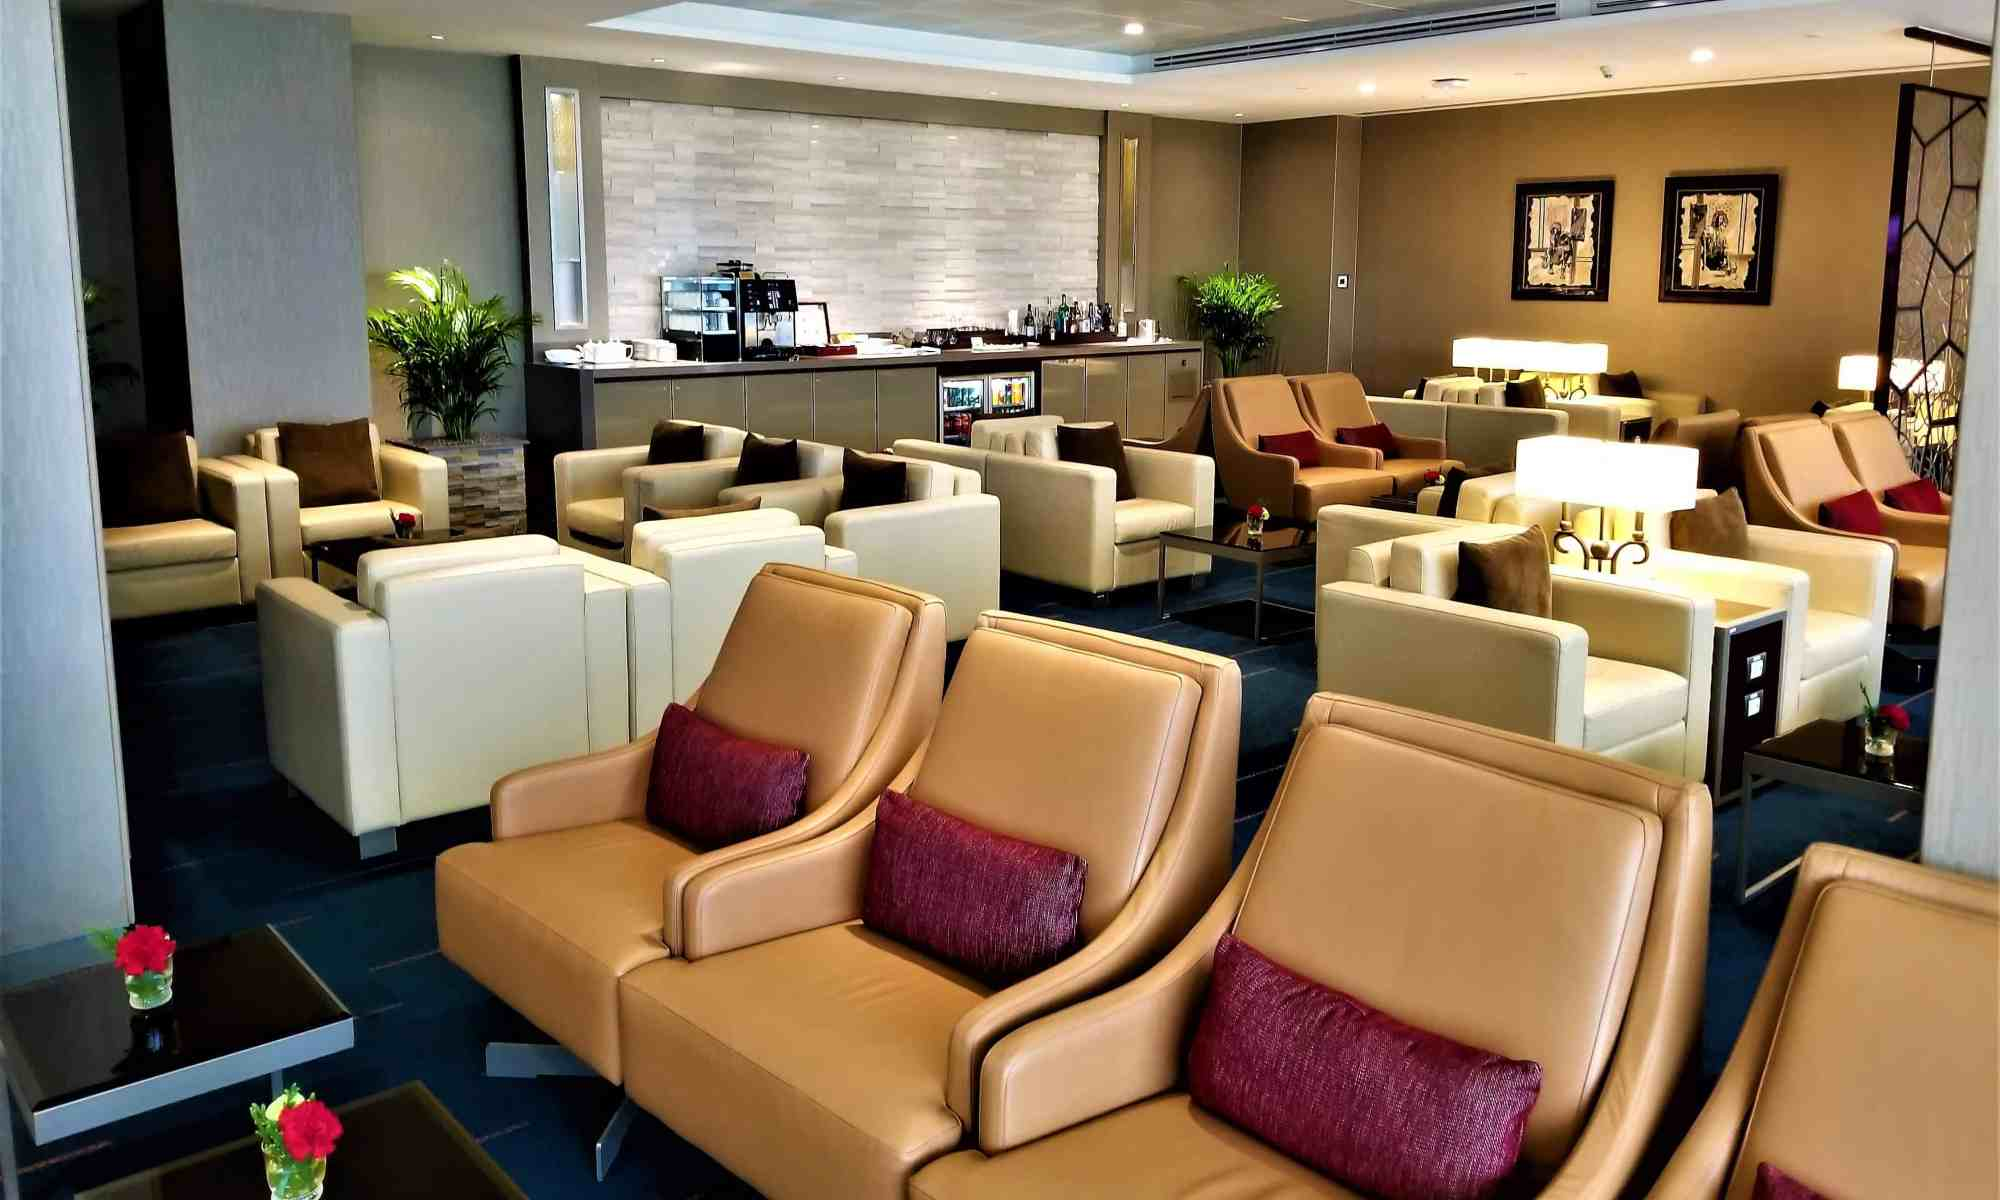 image-of-emirates-airline-lounge-seating-at-bangkok-airport-